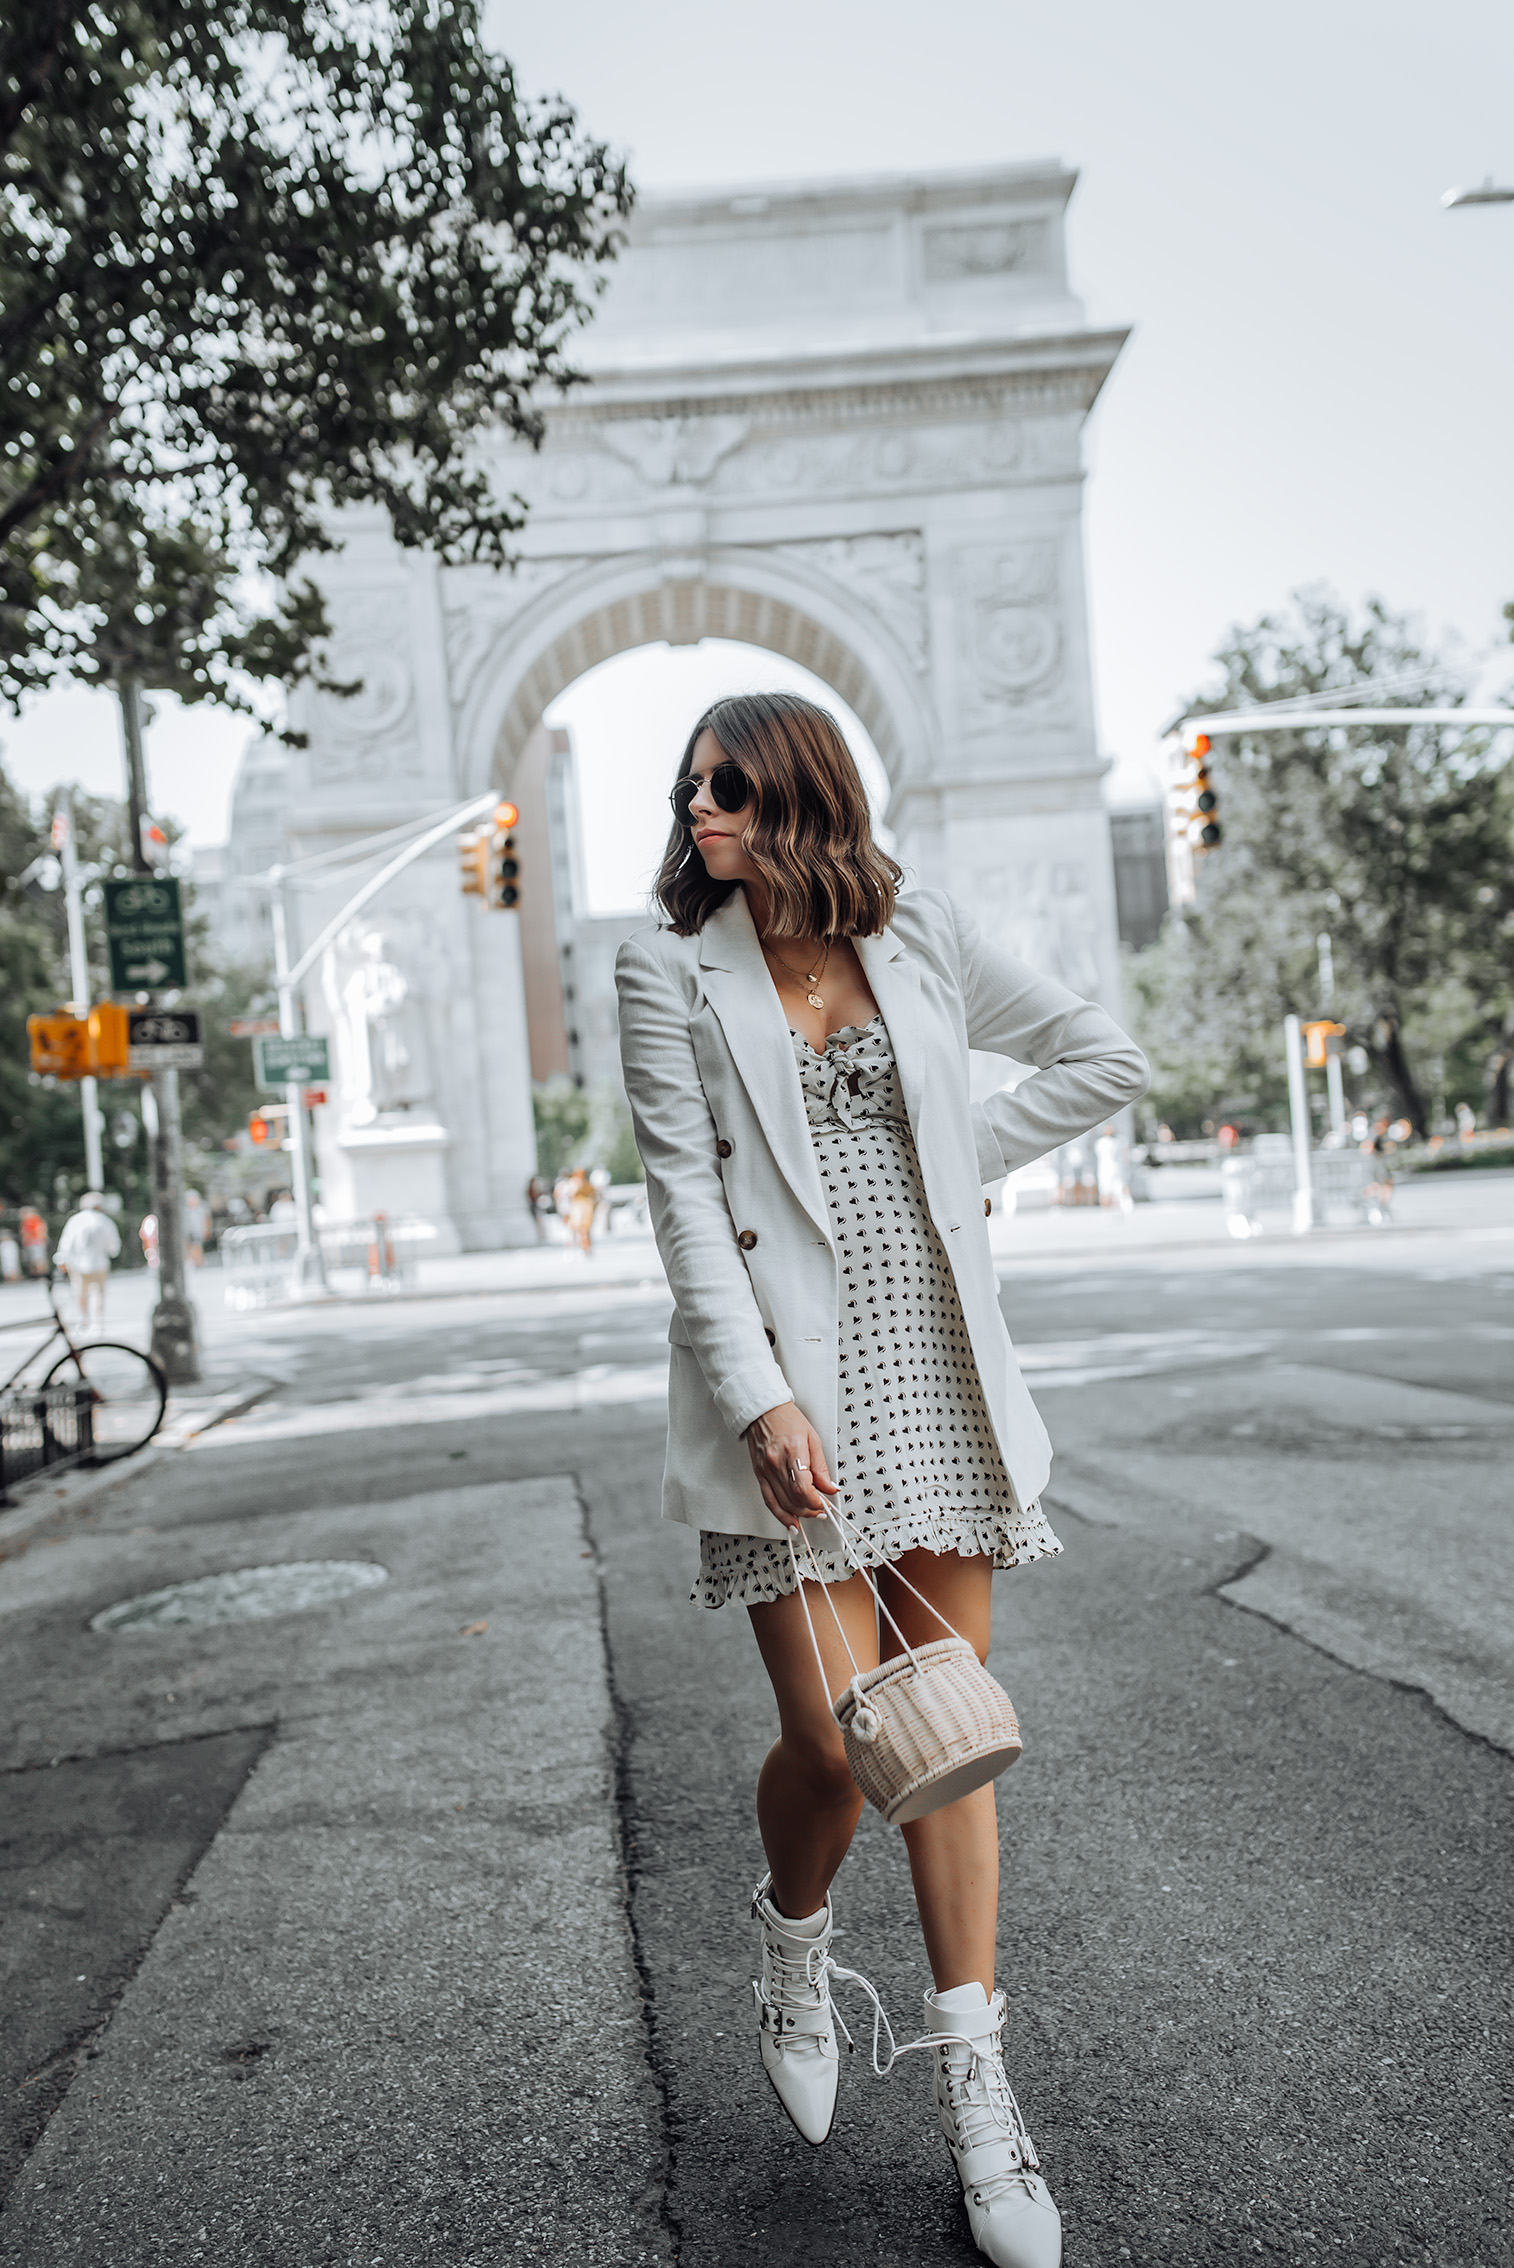 For Love & Lemons Sweetheart Mini Dress | Linen Blazer | ZARA Handbag | Leather Booties #liketkit #blazeroutfits #zara #streetstyle